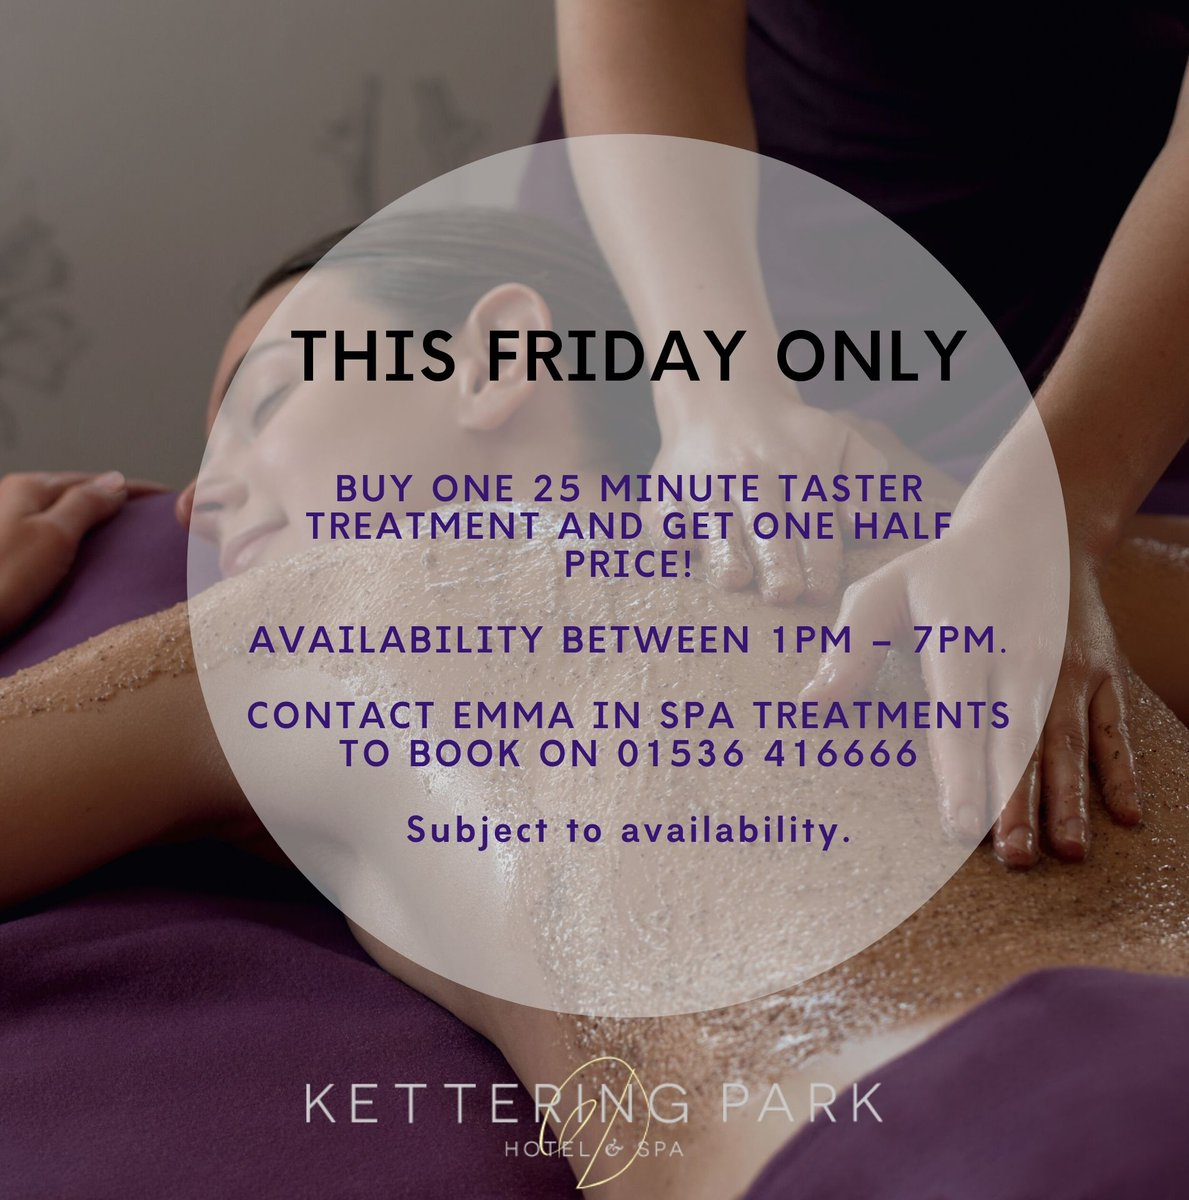 Spa treatment offer this Friday only!☺️